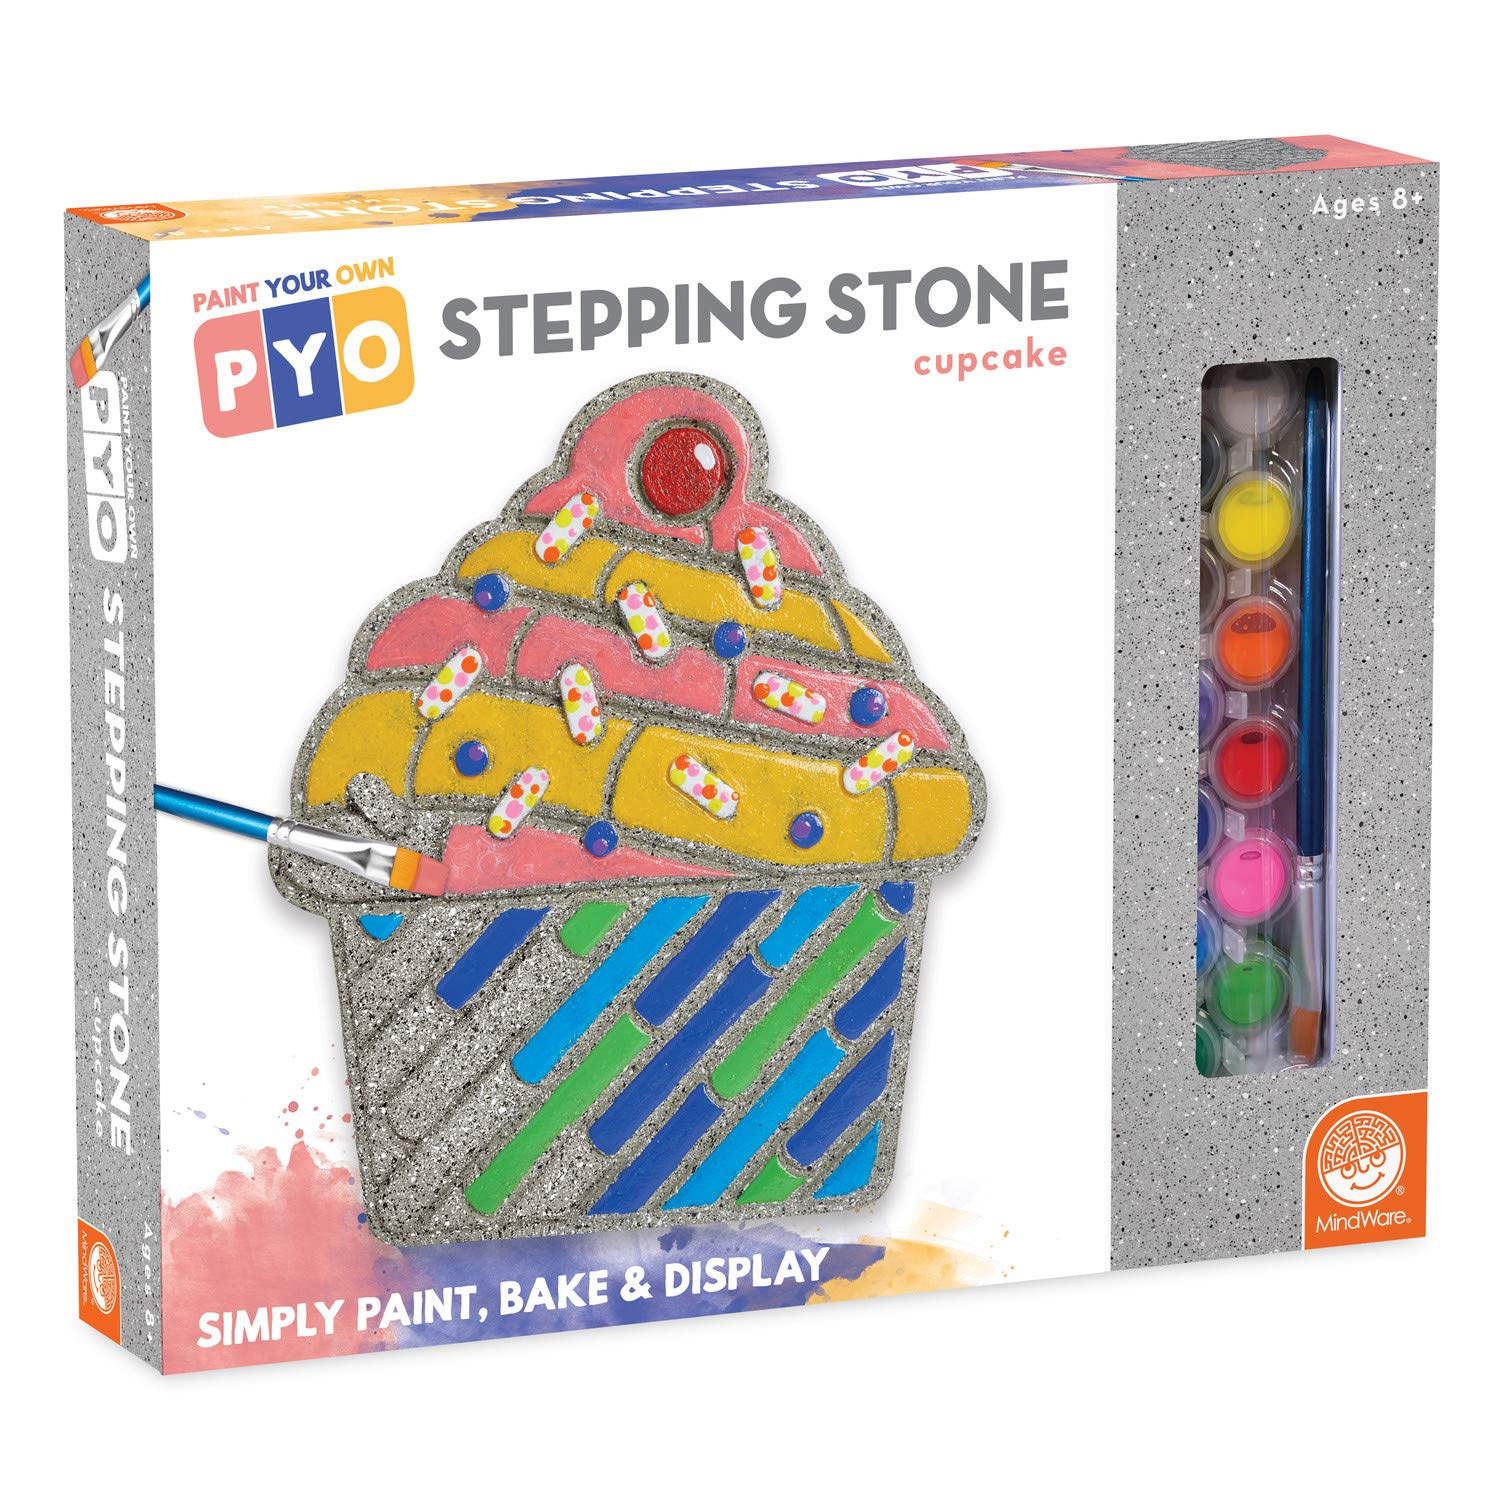 MindWare Paint Your Own Stepping Stone Cupcake